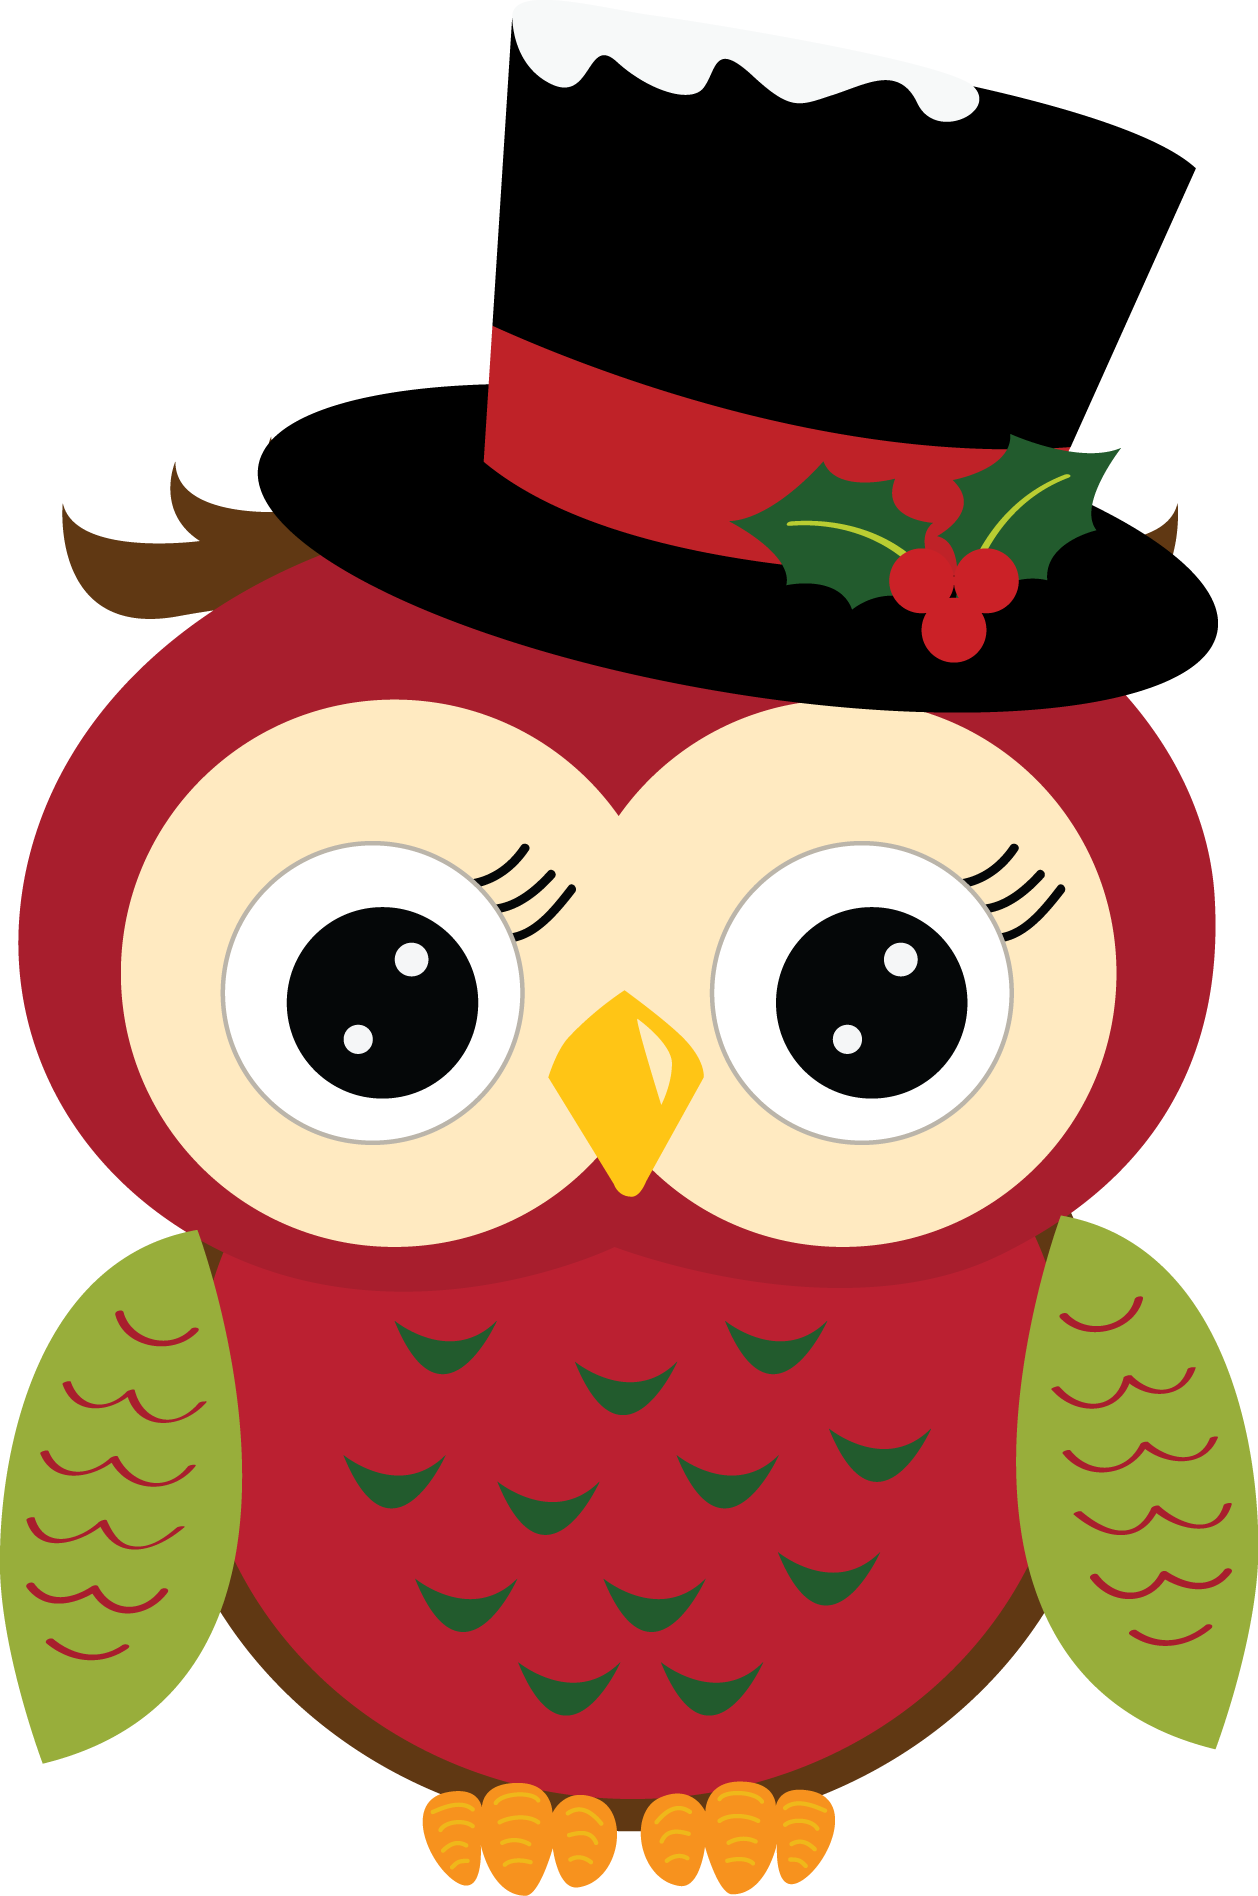 Fathers clipart owl. Pin by marizelle theron